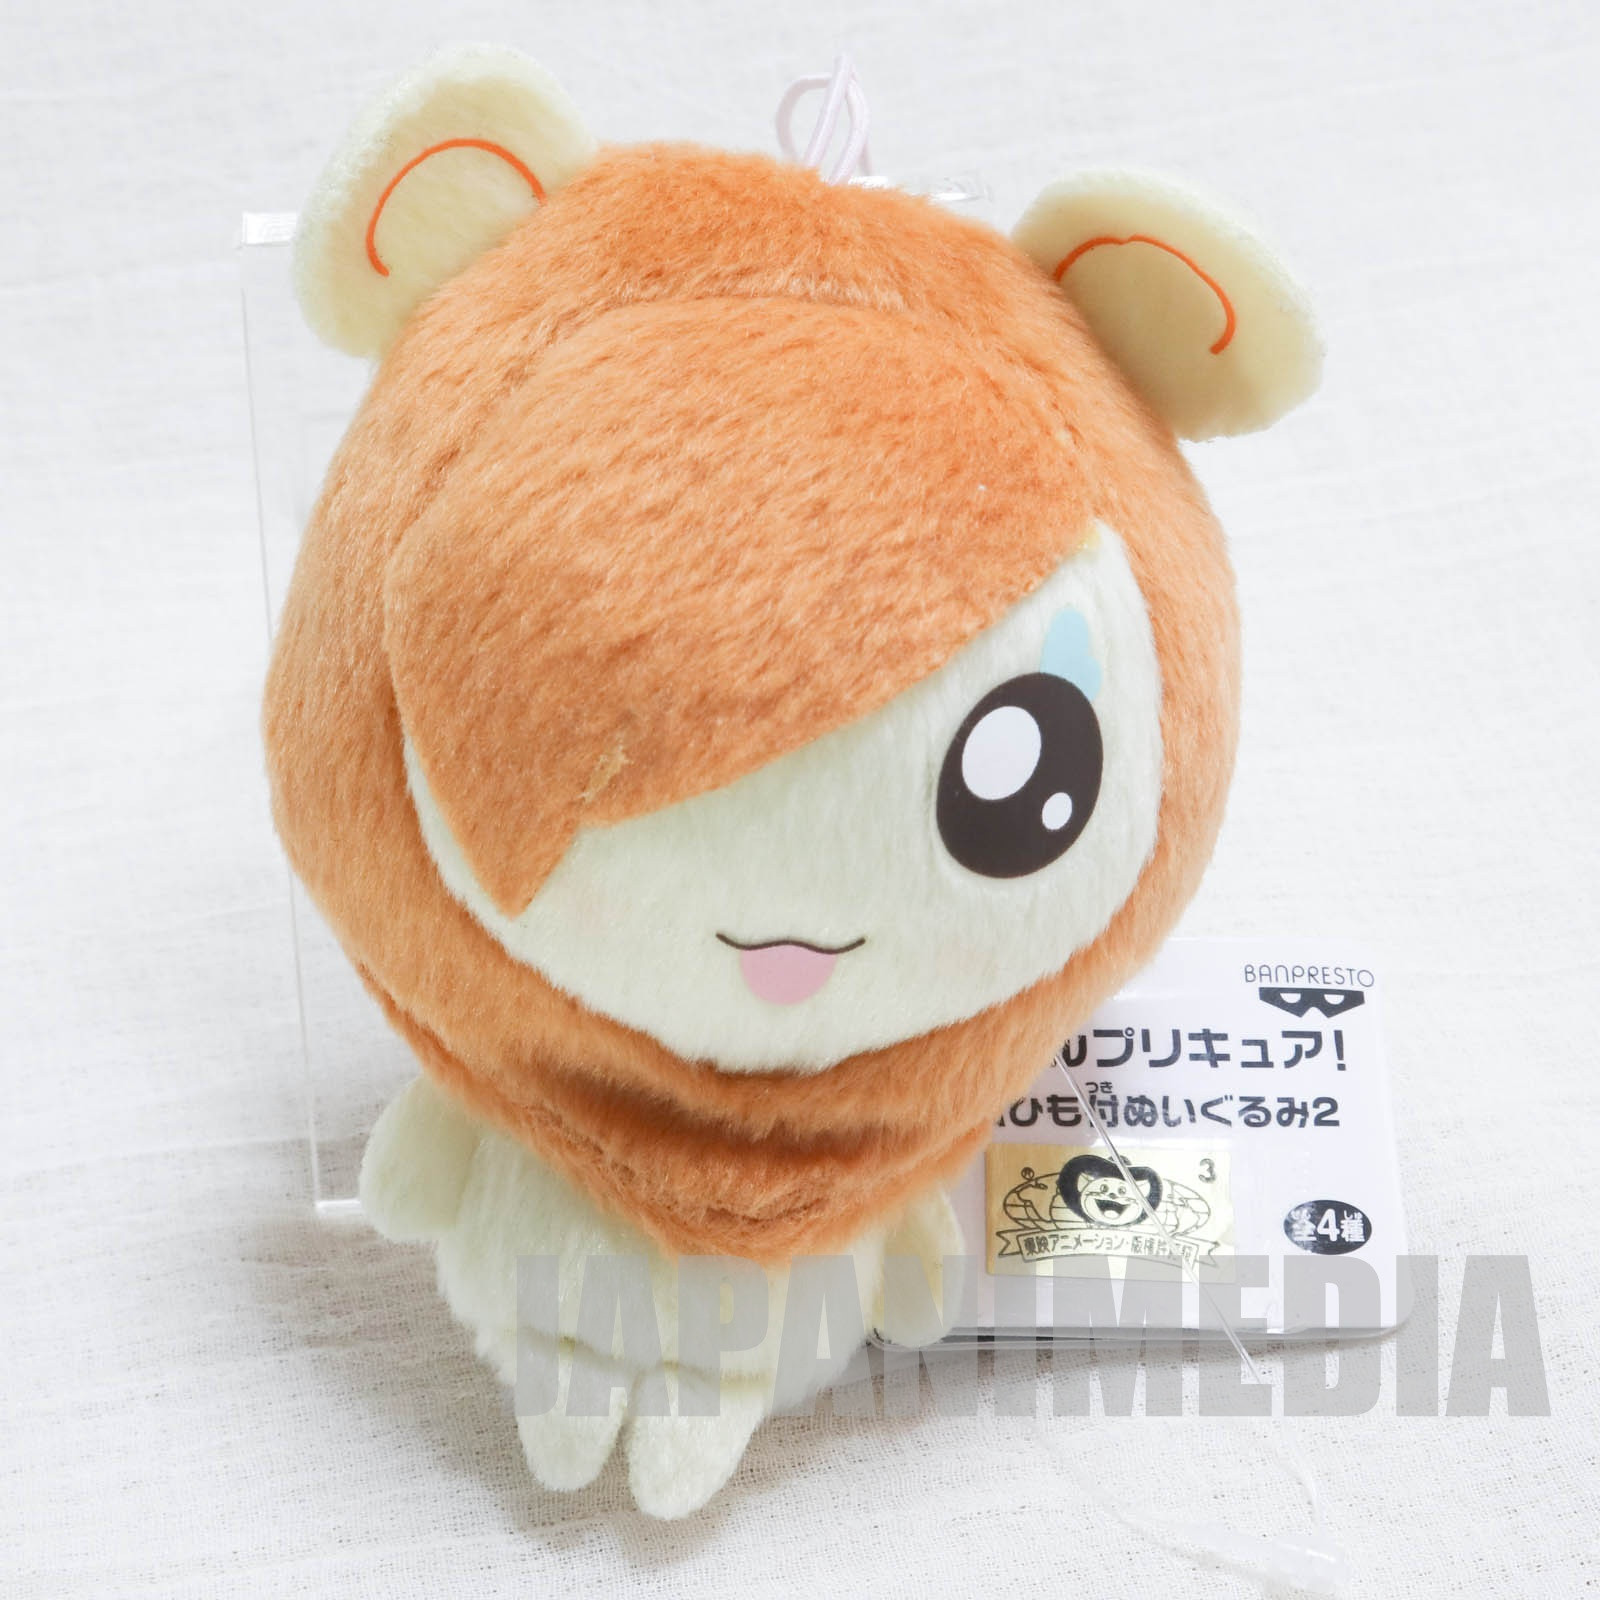 Smile PreCure! Pop Mini Plush doll with thread JAPAN ANIME